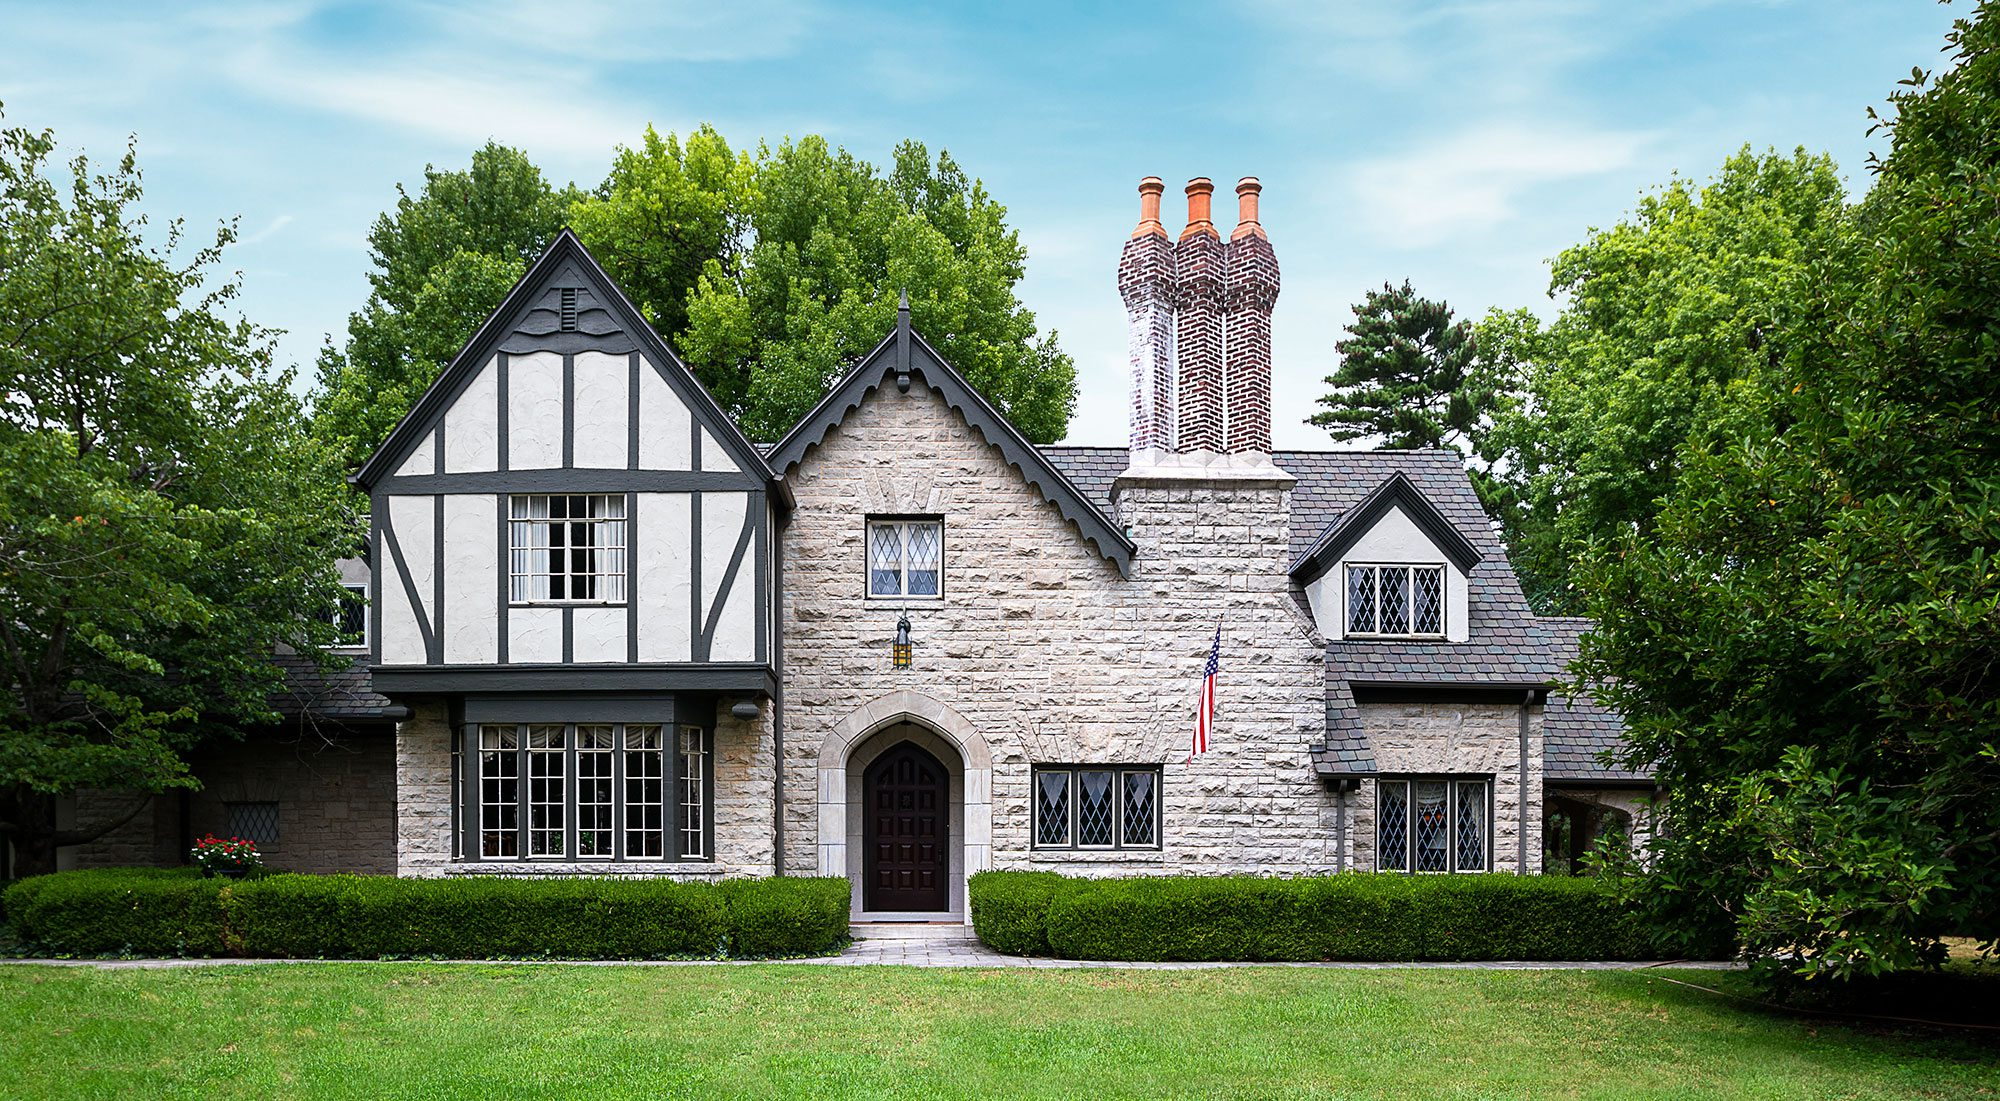 Historic chimney tudor home in Springfield, MO